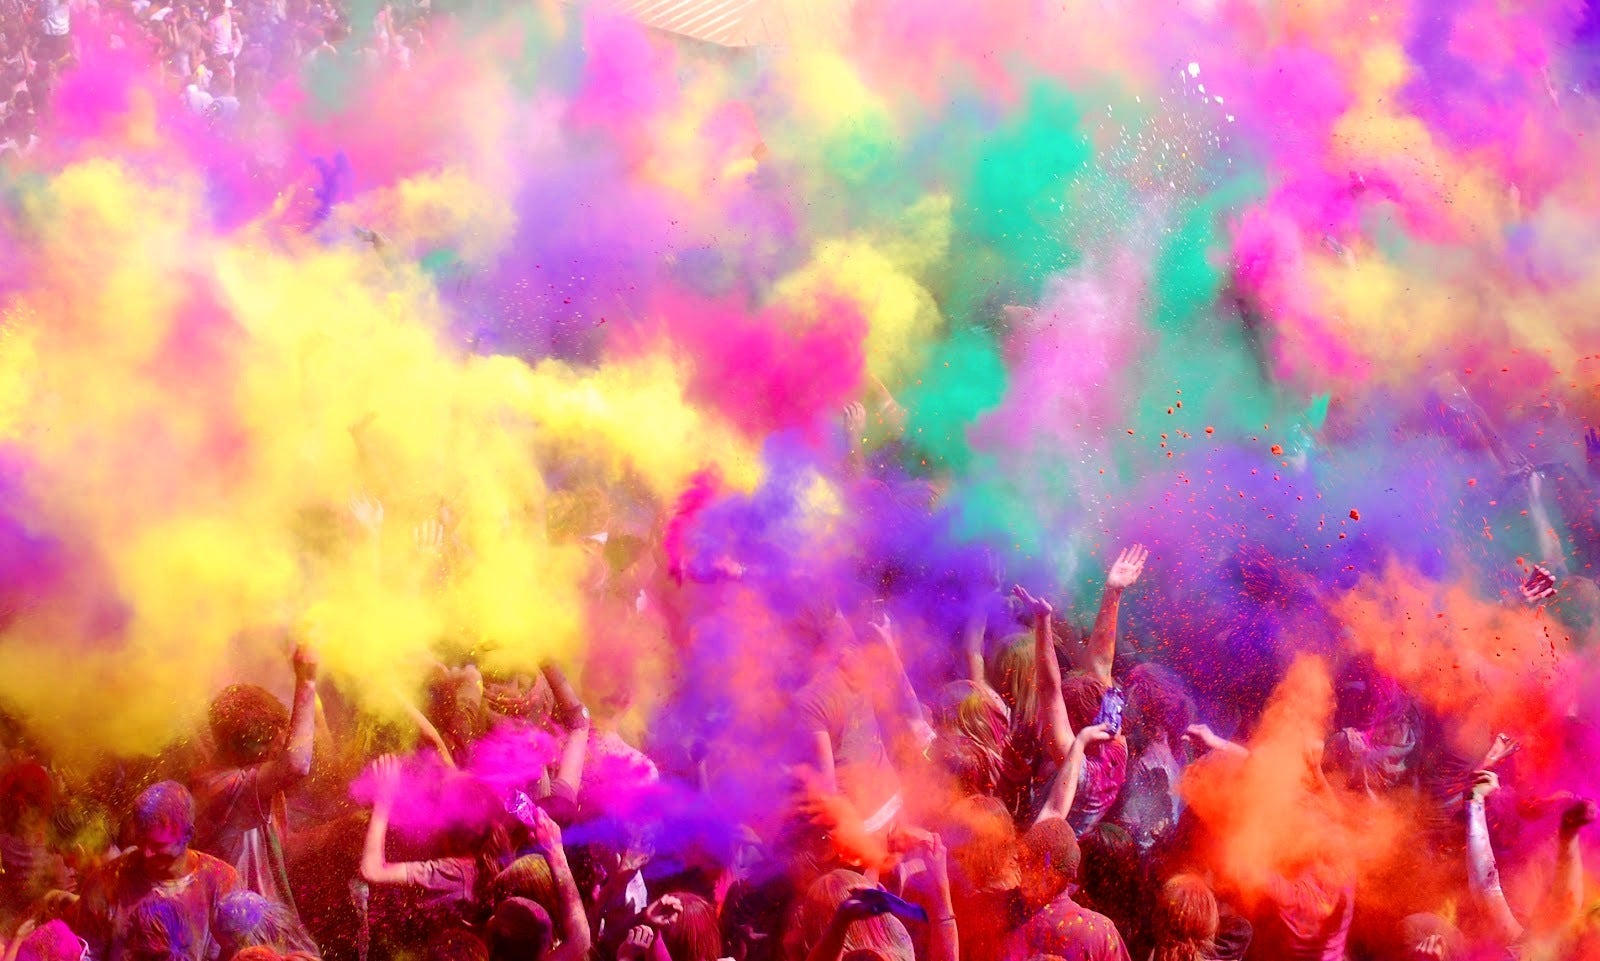 The Holî, color festival